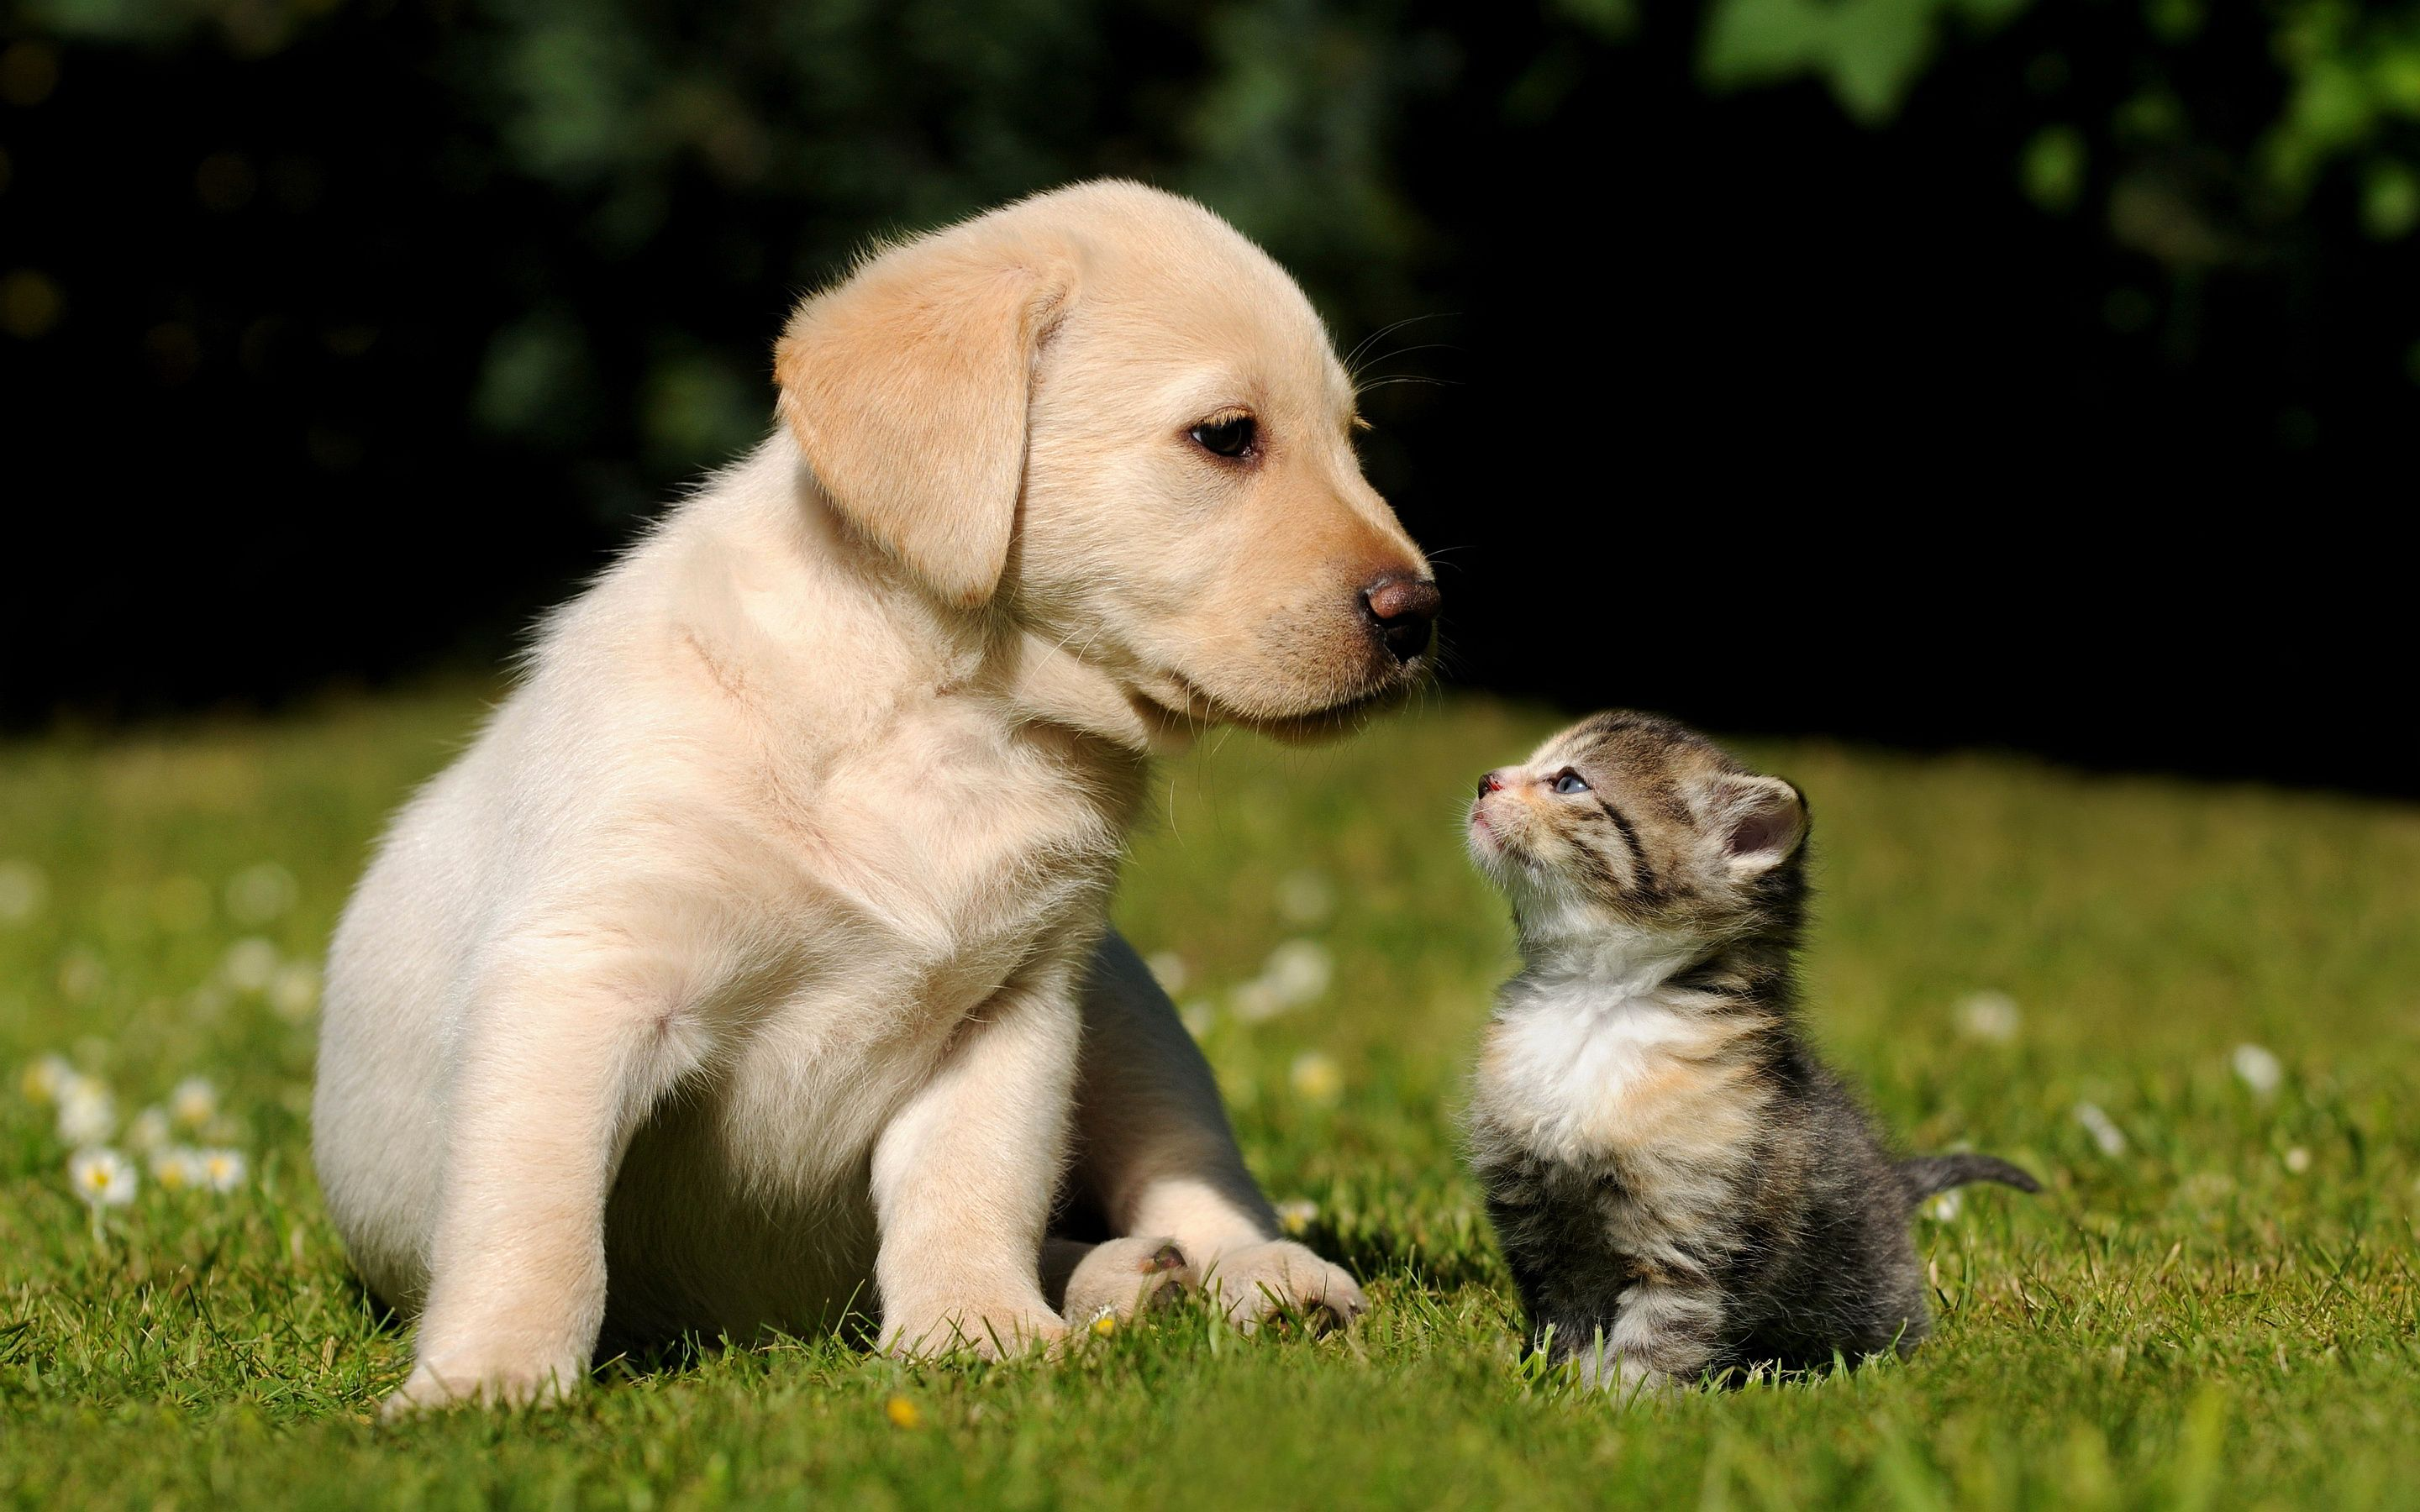 2880x1800 - Cute Puppy and Kitten 31